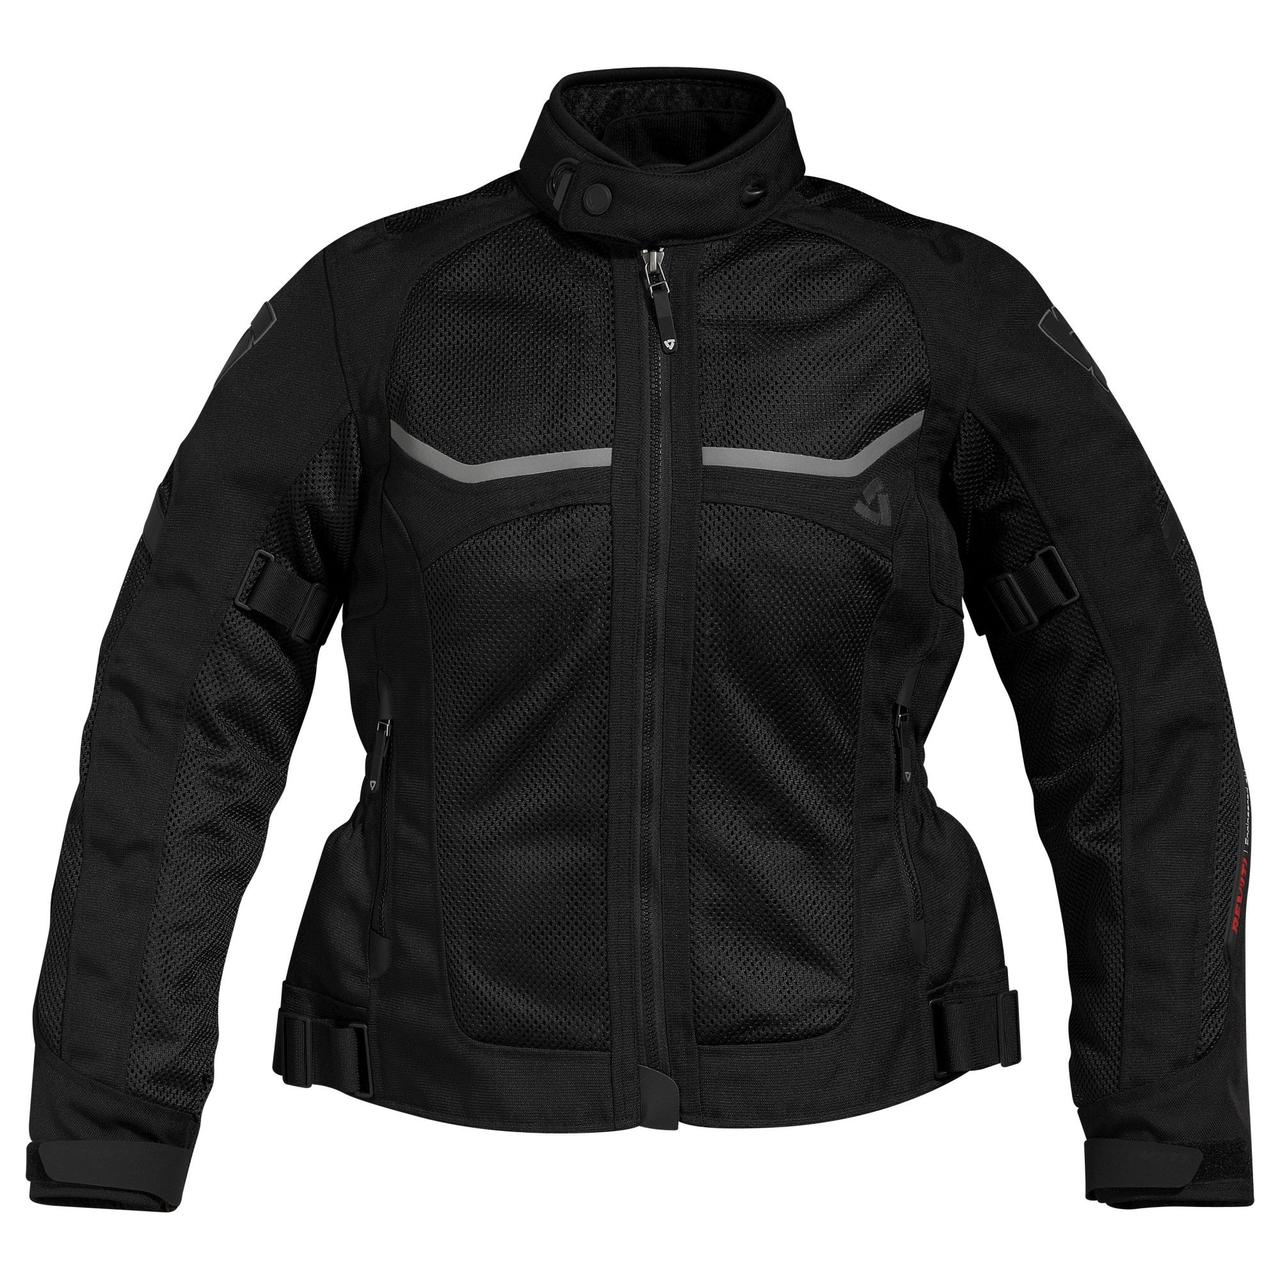 Мотокуртка Revit Tornado LADIES р. 34 black